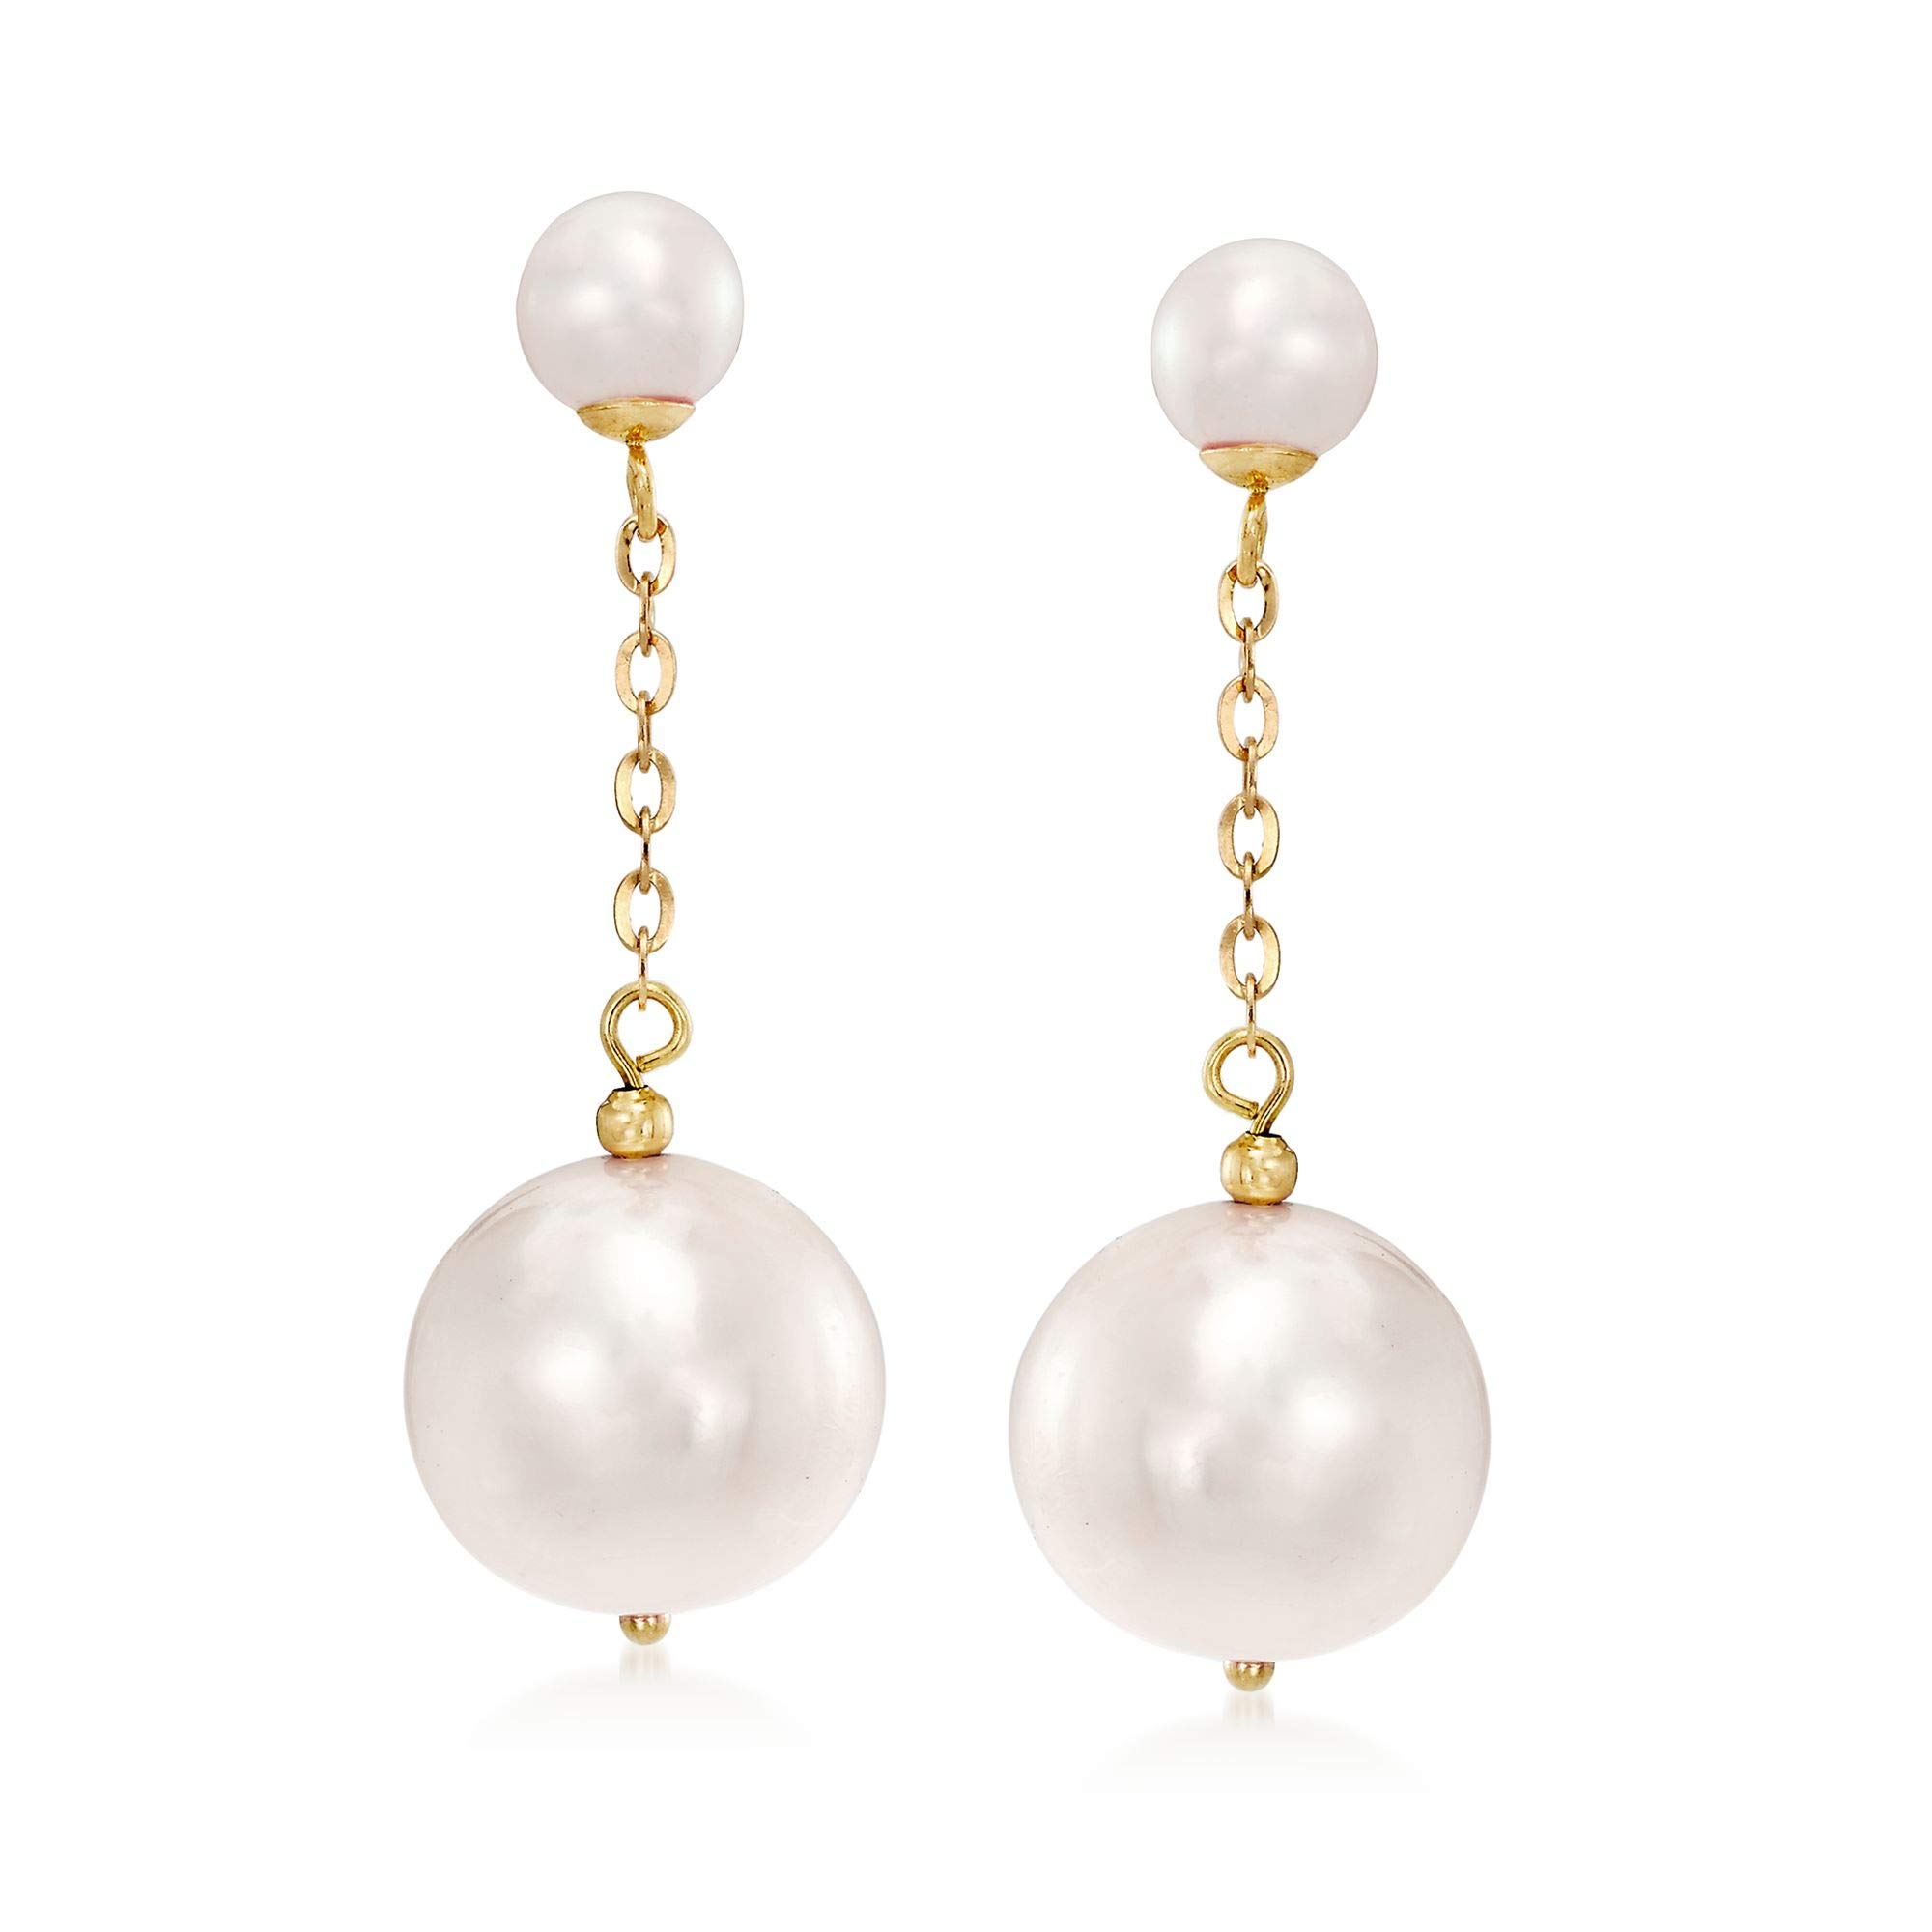 Ross-Simons 5.5-13mm Cultured Pearl Drop Earrings With 18kt Yellow Gold